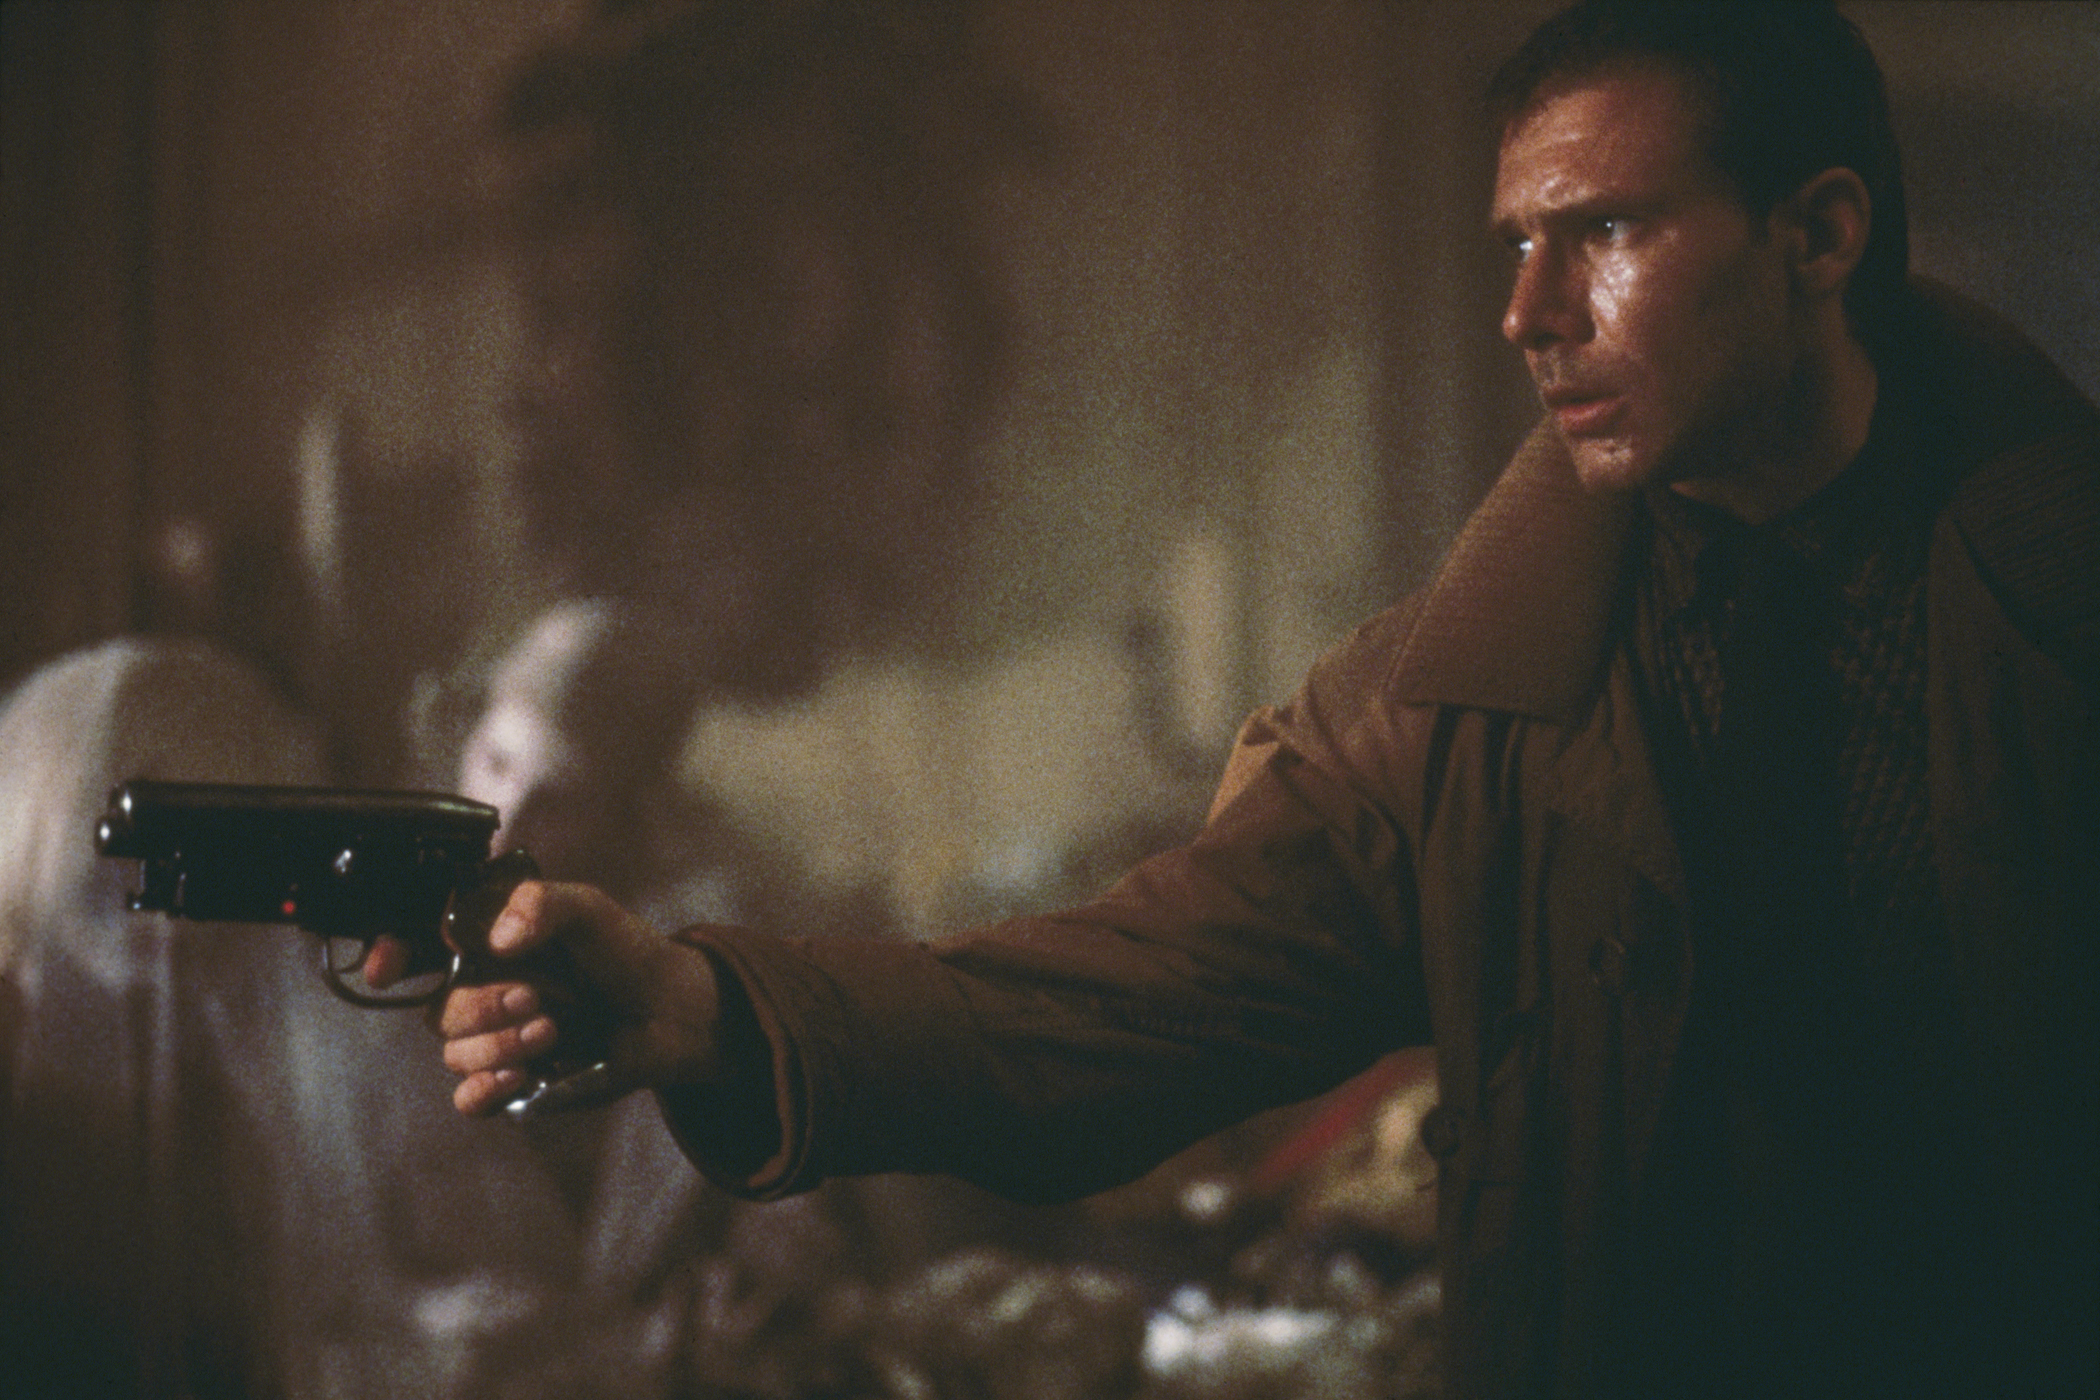 'Blade runner' Rick Deckard (Harrison Ford) enters Sebastian's apartment, where he is soon to be attacked by the replicant Pris (Daryl Hannah, immediately behind Deckard's gun), in a scene from Ridley Scott's futuristic thriller 'Blade Runner', 1982.